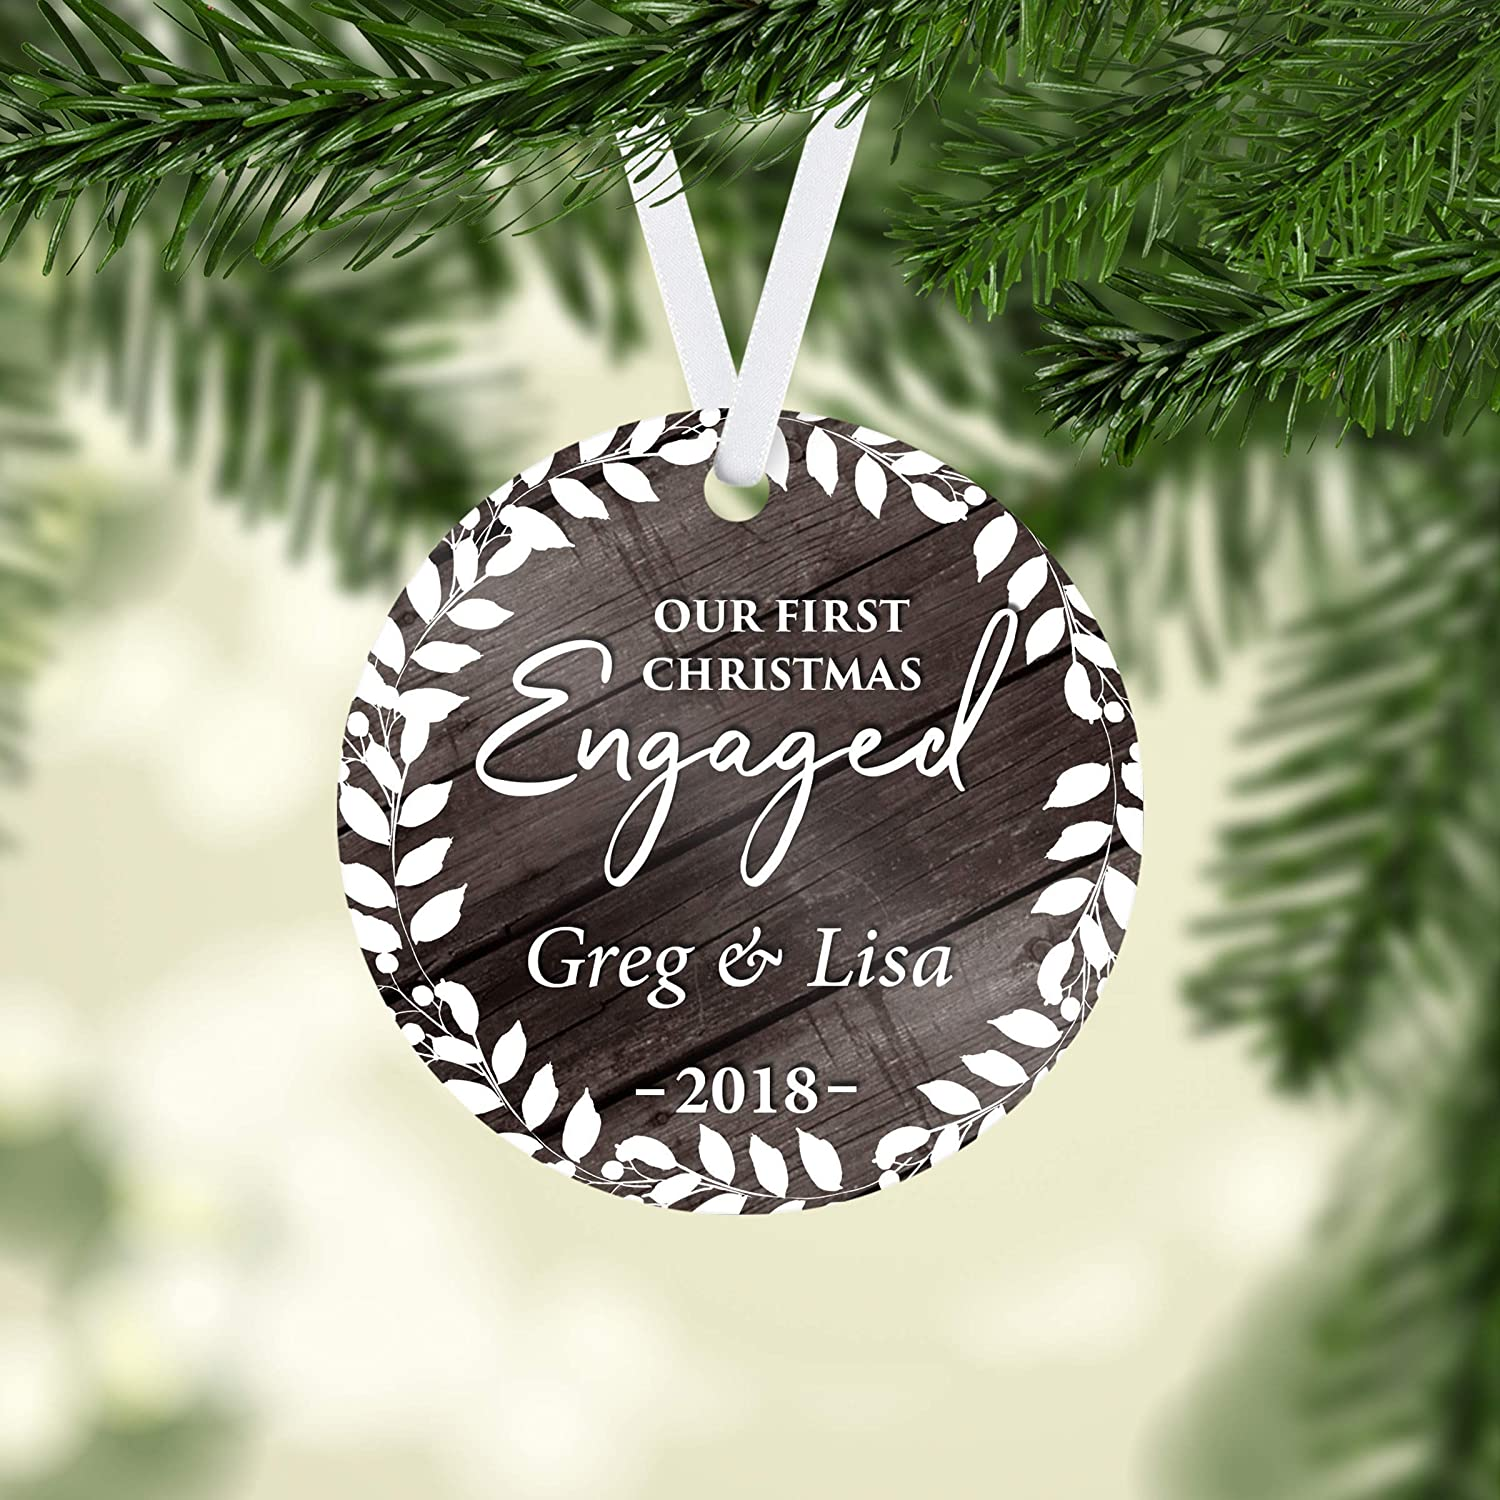 ENGAGEMENT Engaged Christmas Ornament Personalized Under 25 Christmas Ornament for Engagement Vintage Silver Plated Engaged Couple